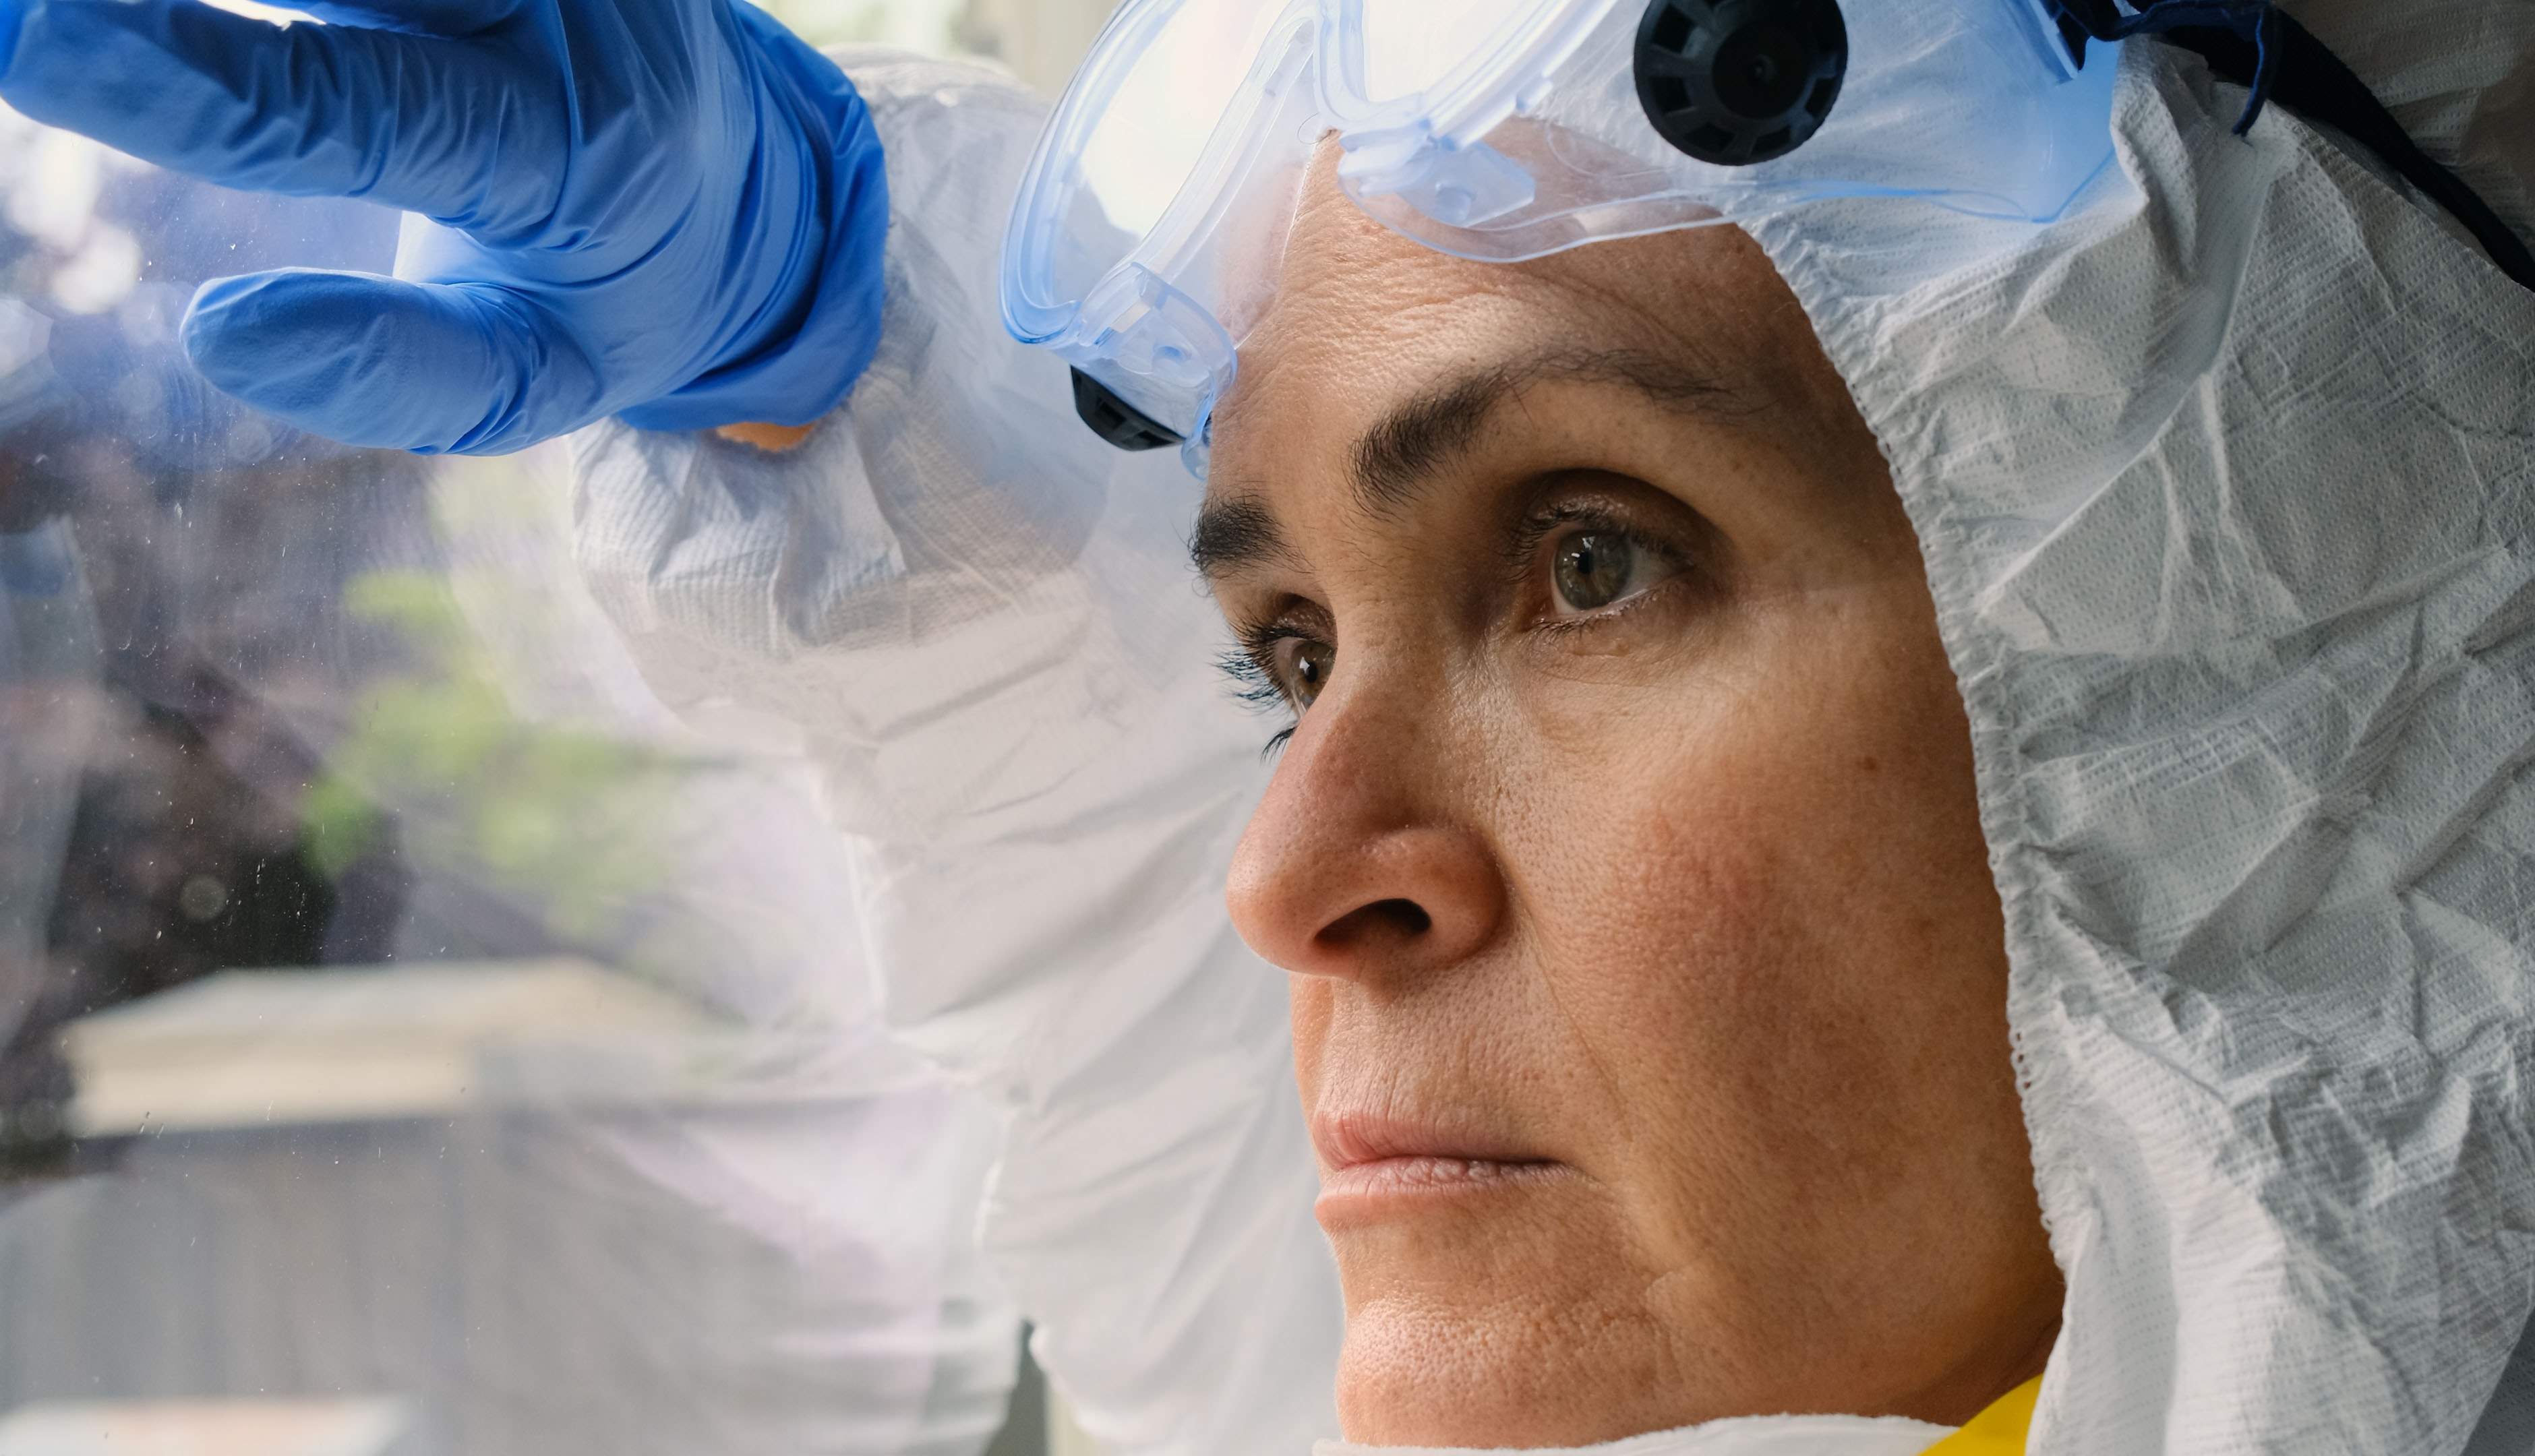 health care worker wearing protective gear looking out a window. She appears sad and stressed.